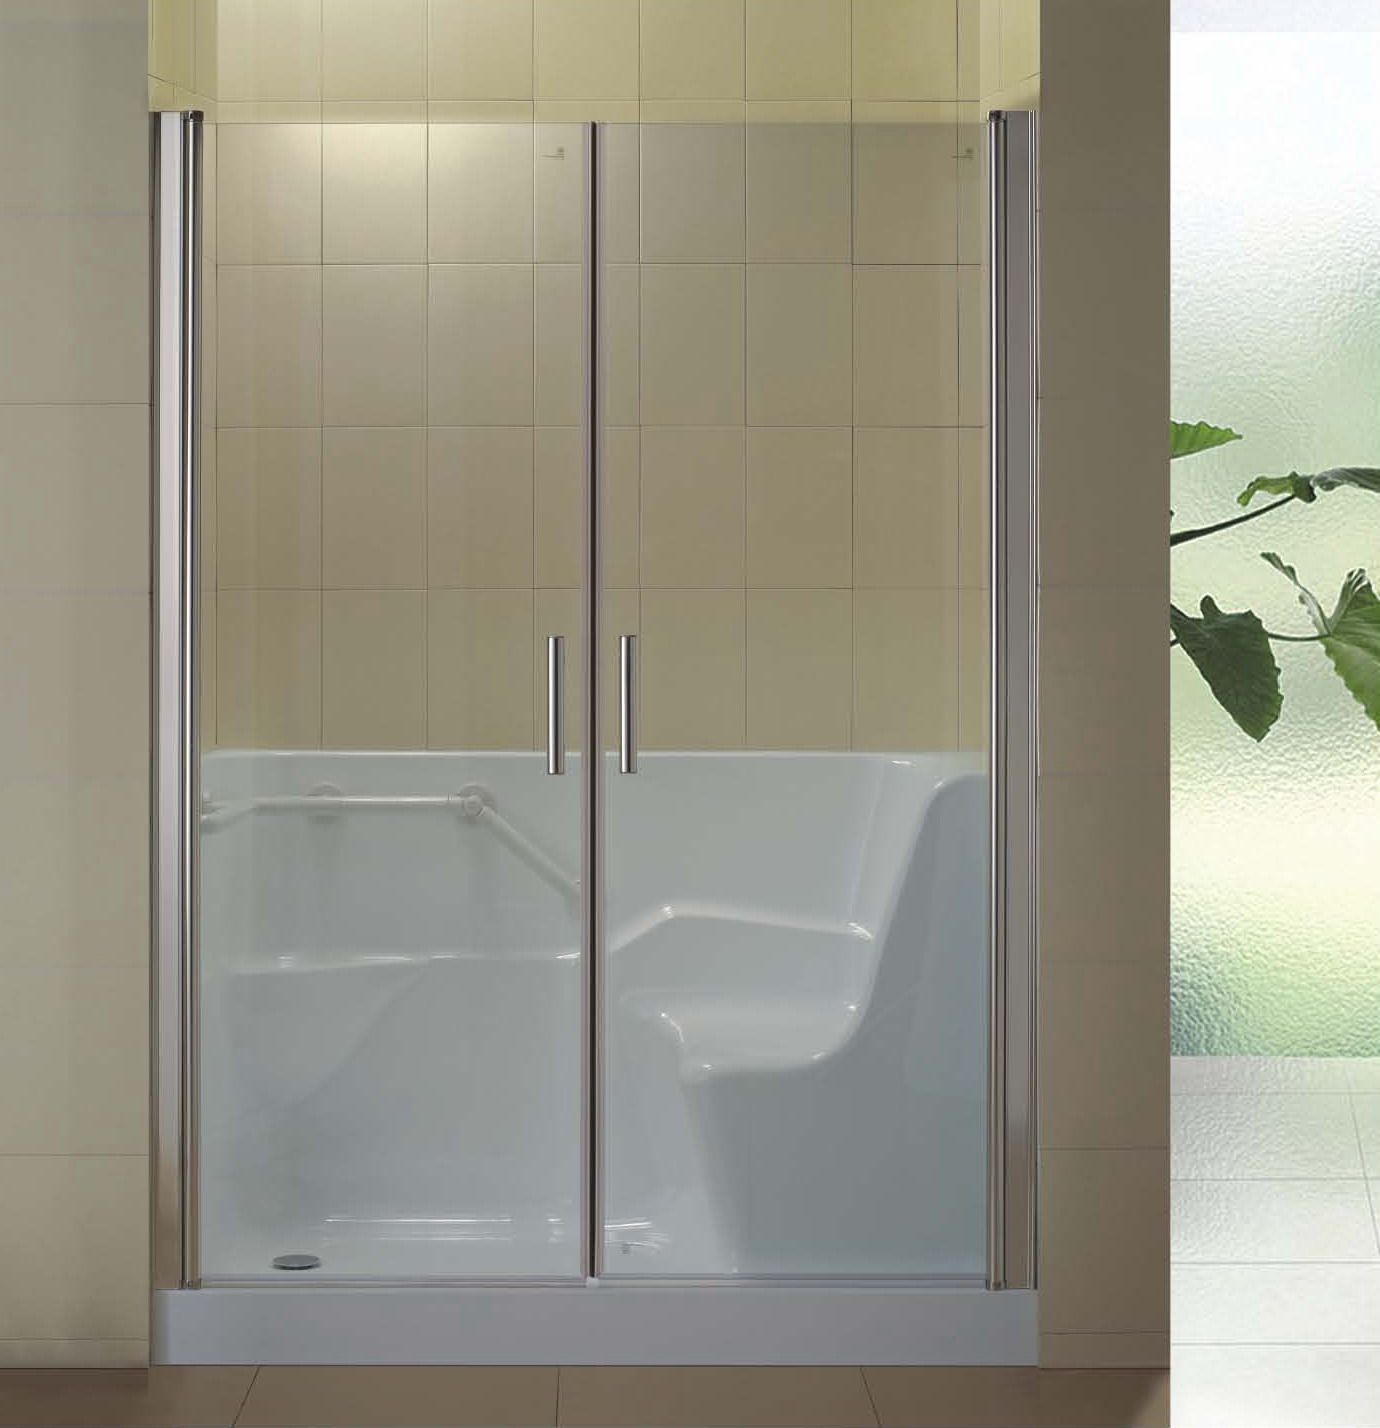 New Shower Room For Old Or Disable People (L 391)